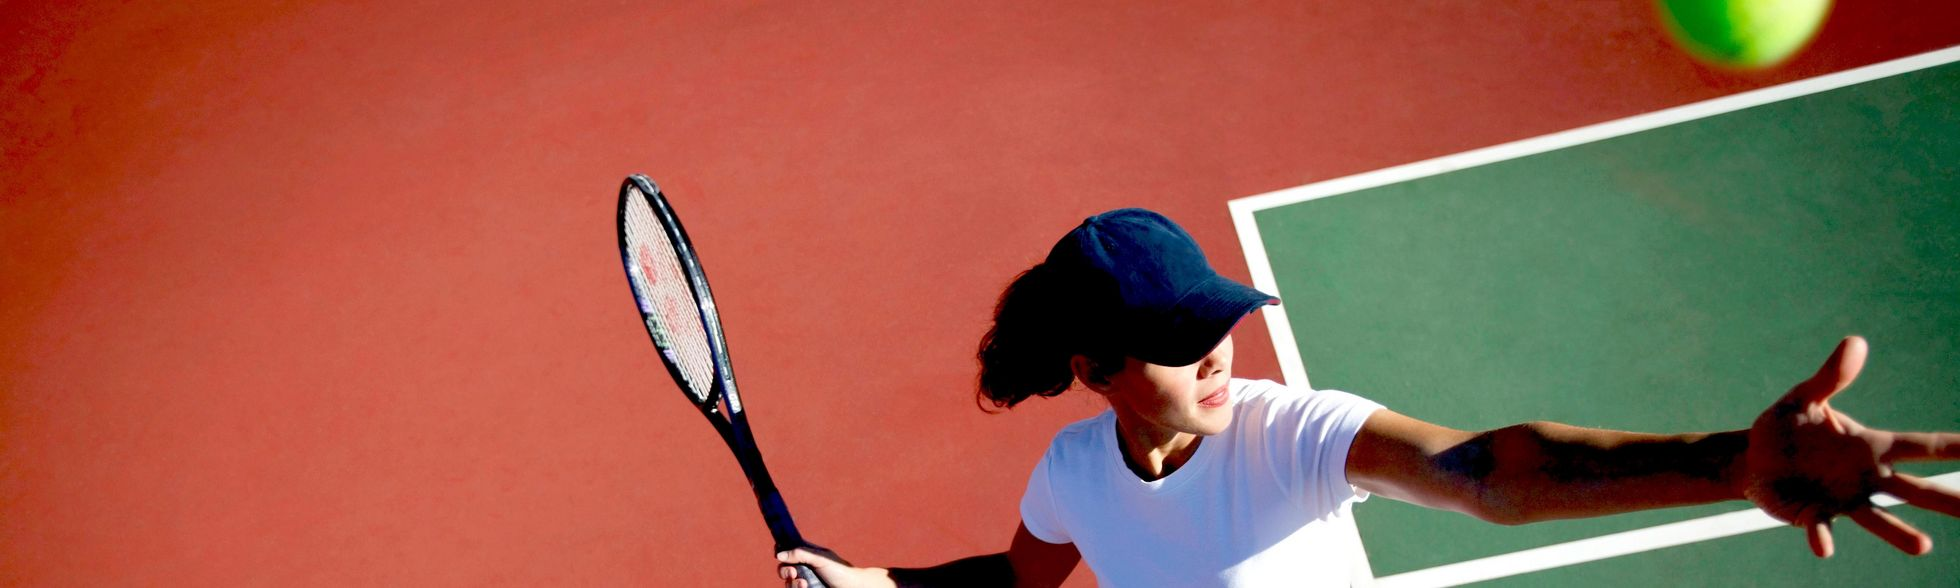 Female, Focus, Exercise, Sport, Match, Challenge, Skill, Game, Hobby, Entertainment, Caucasian, Concentrate, Opportunity, Swing, Smile, Alone, Hat, Player, Determined, Passion, Ball, Pride, Alive, T-Shirt, Accessories, Cap, Kelly, Redinger, Serve, Tennis, Courts, Racket, White, Work, Power, Adult, People, Out, Woman, Service, Perspective